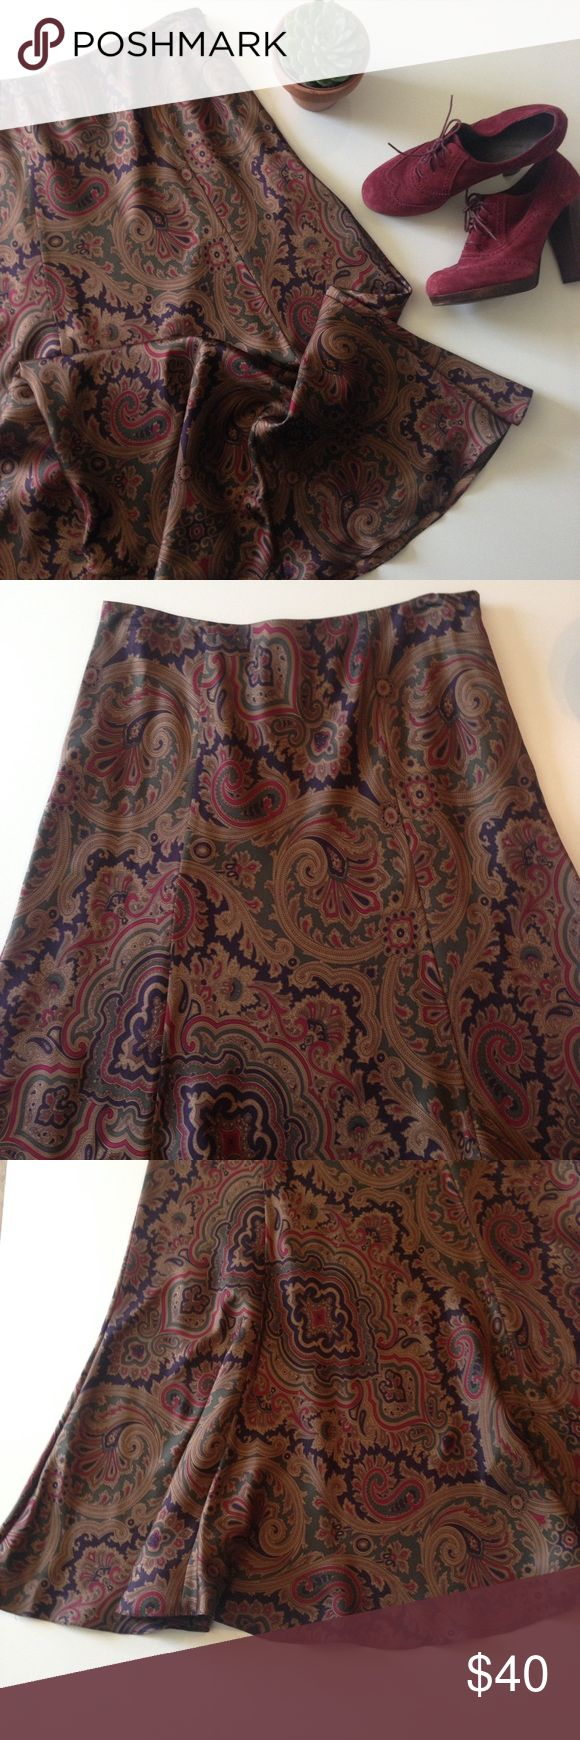 LAUREN Ralph Lauren silk skirt This gorgeous silk skirt is fitted through waist and hips, flaring out at the bottom, trumpet style. Beautiful fall colors, paisley print. This is a classic piece that you'll have forever! It has a side zip closure and is fully lined. In EUC - like new, no flaws. I love this with a chunky turtleneck sweater and riding boots or heeled oxfords. Lauren Ralph Lauren Skirts Maxi